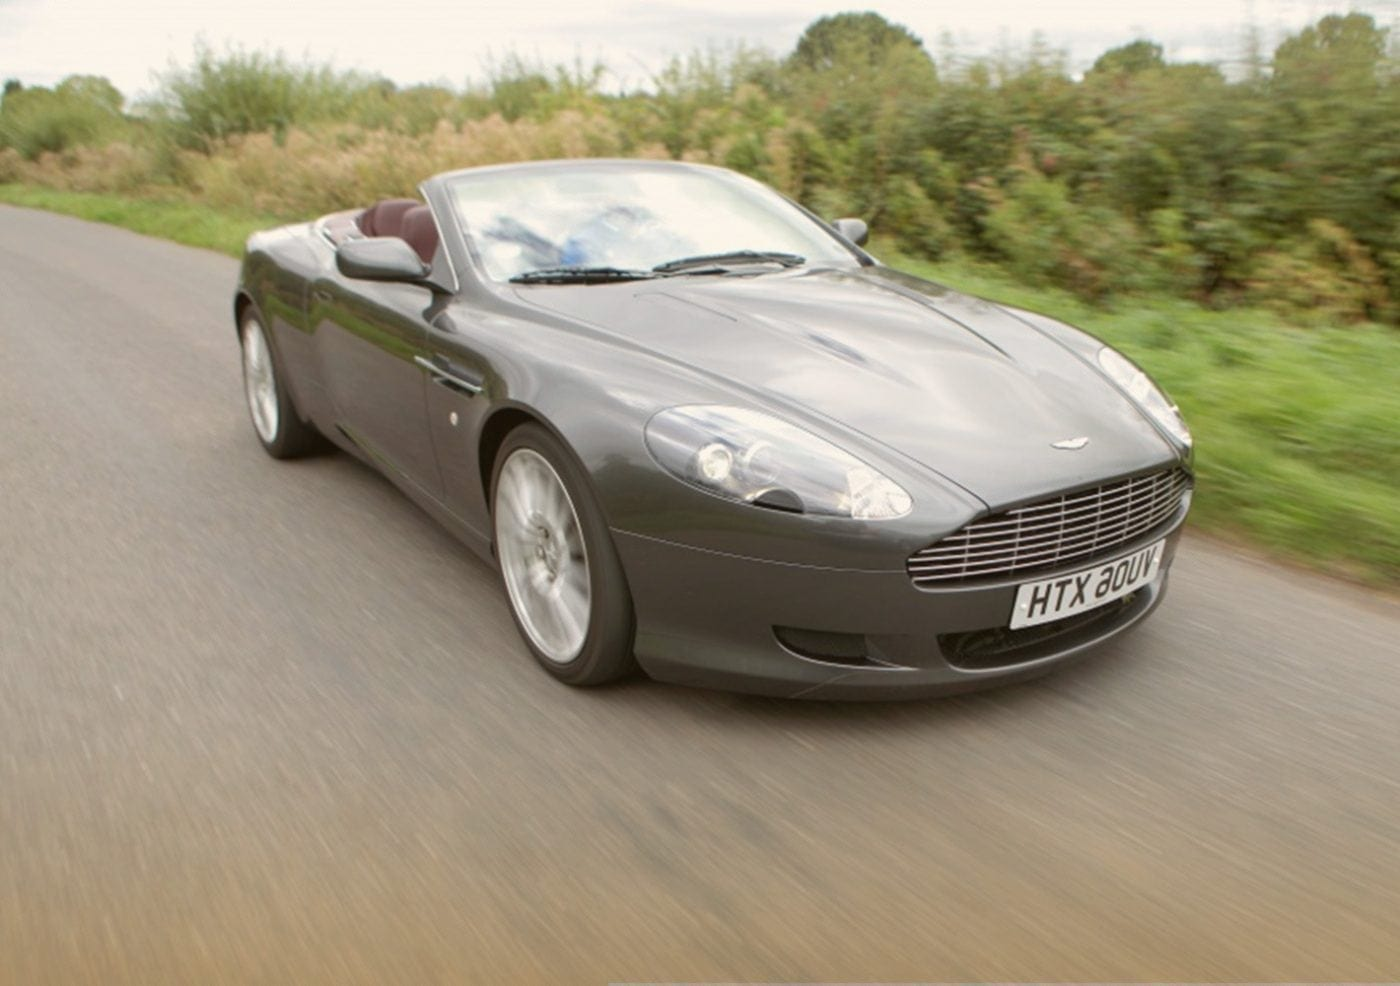 Aston Martin DB9 over the years